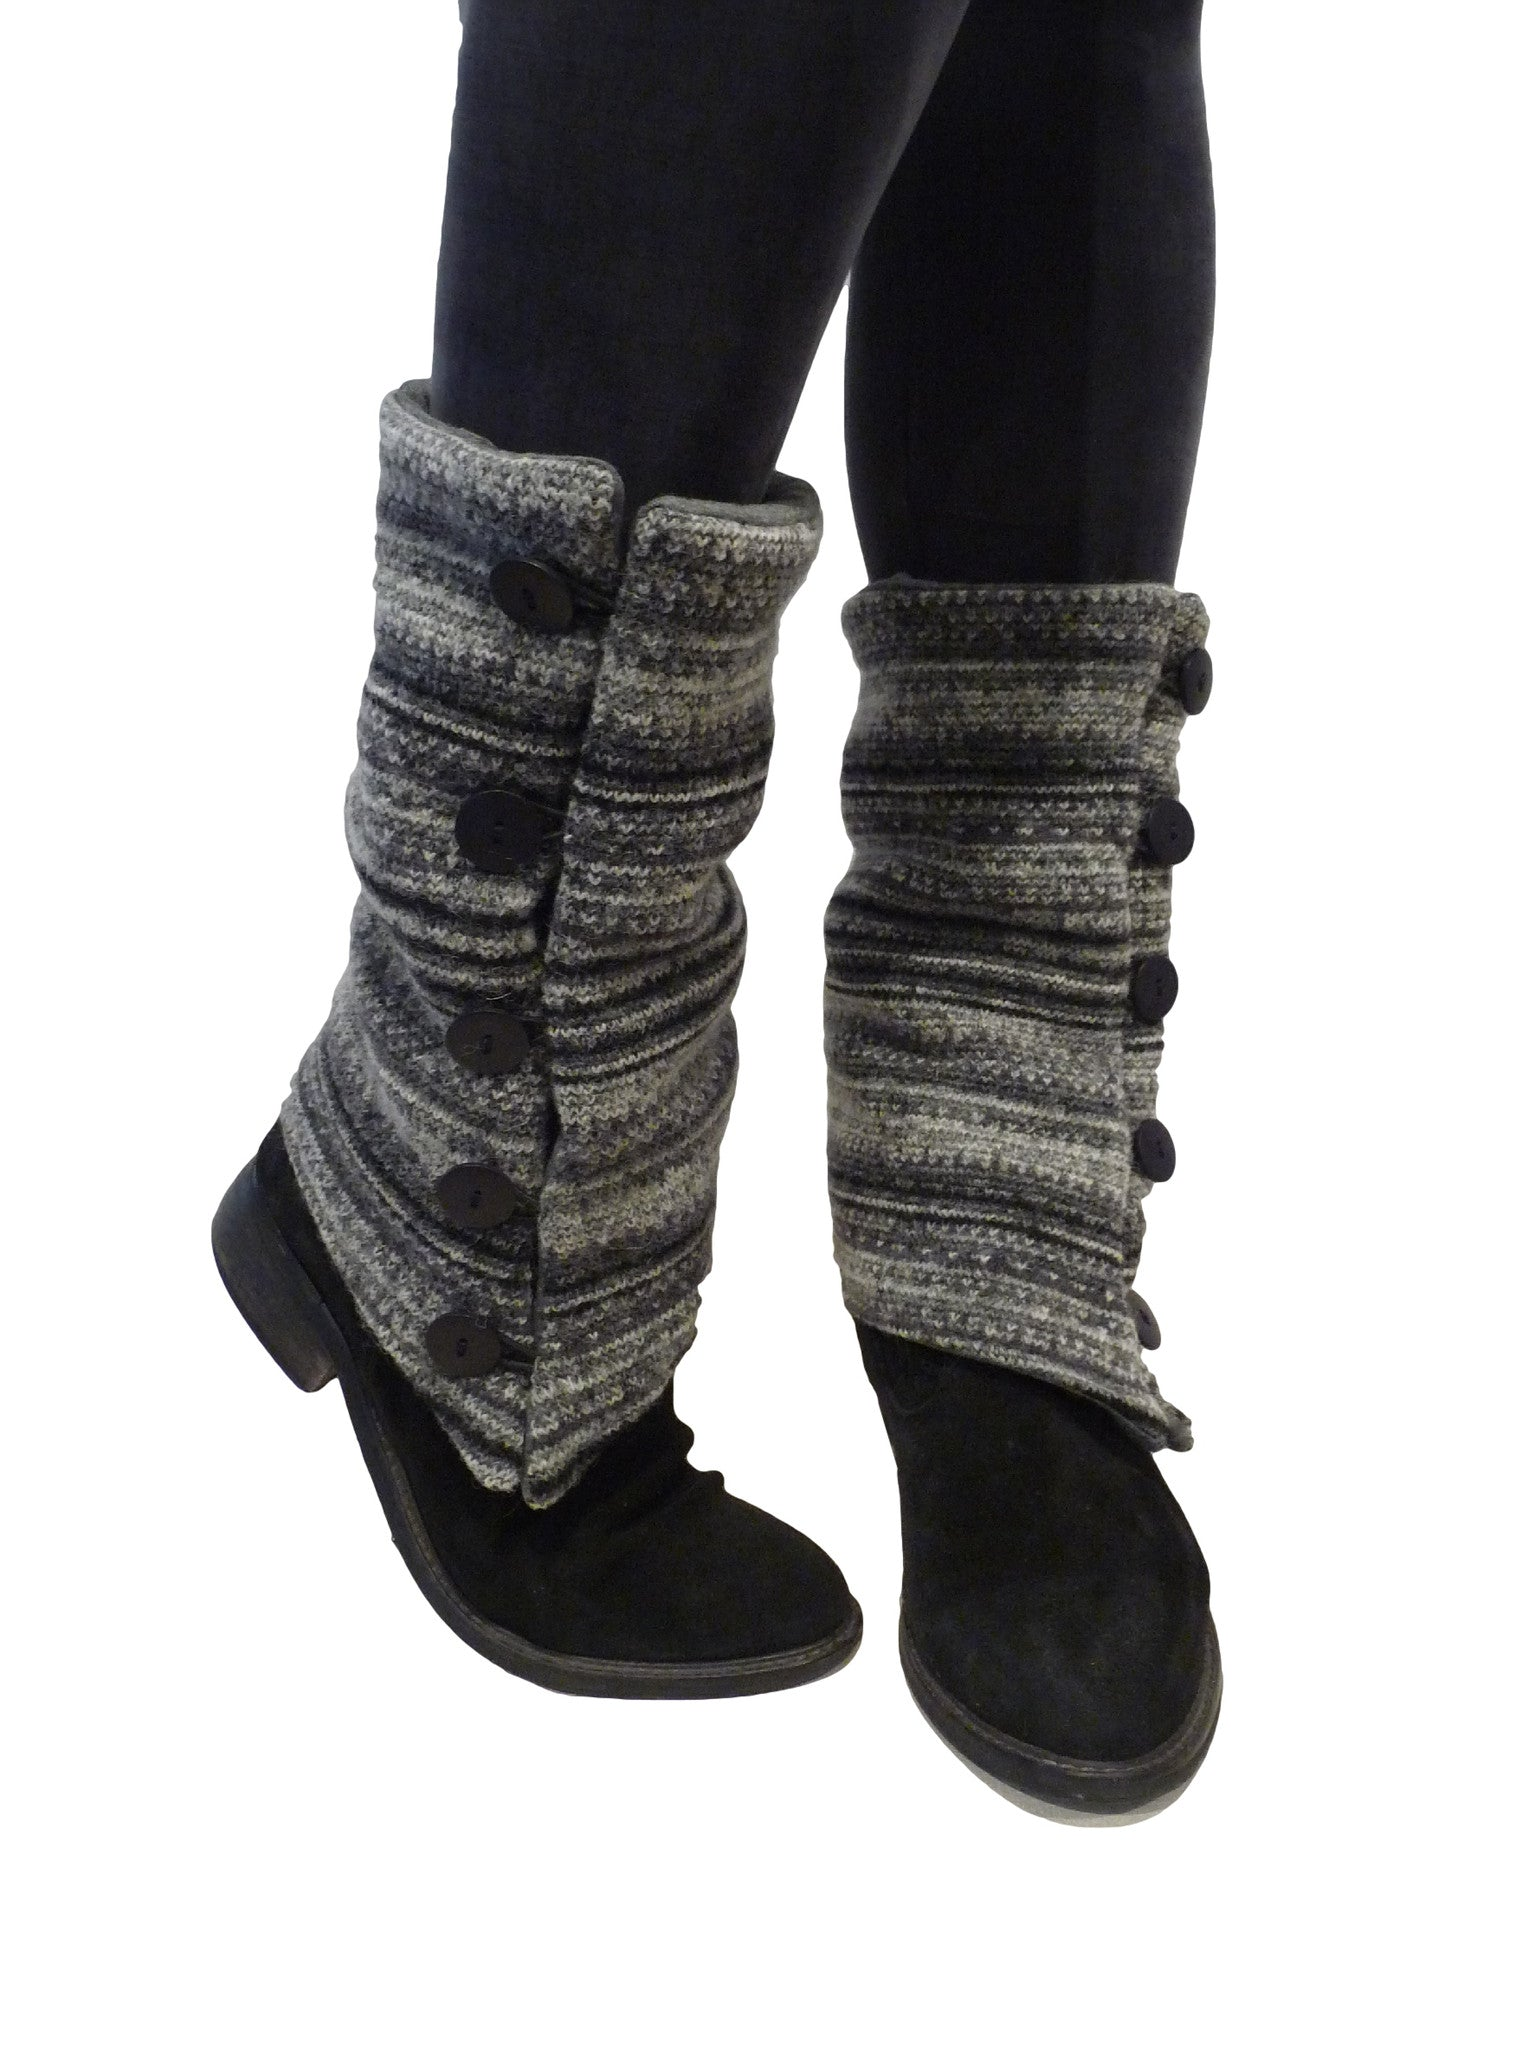 Norway Leg Warmers